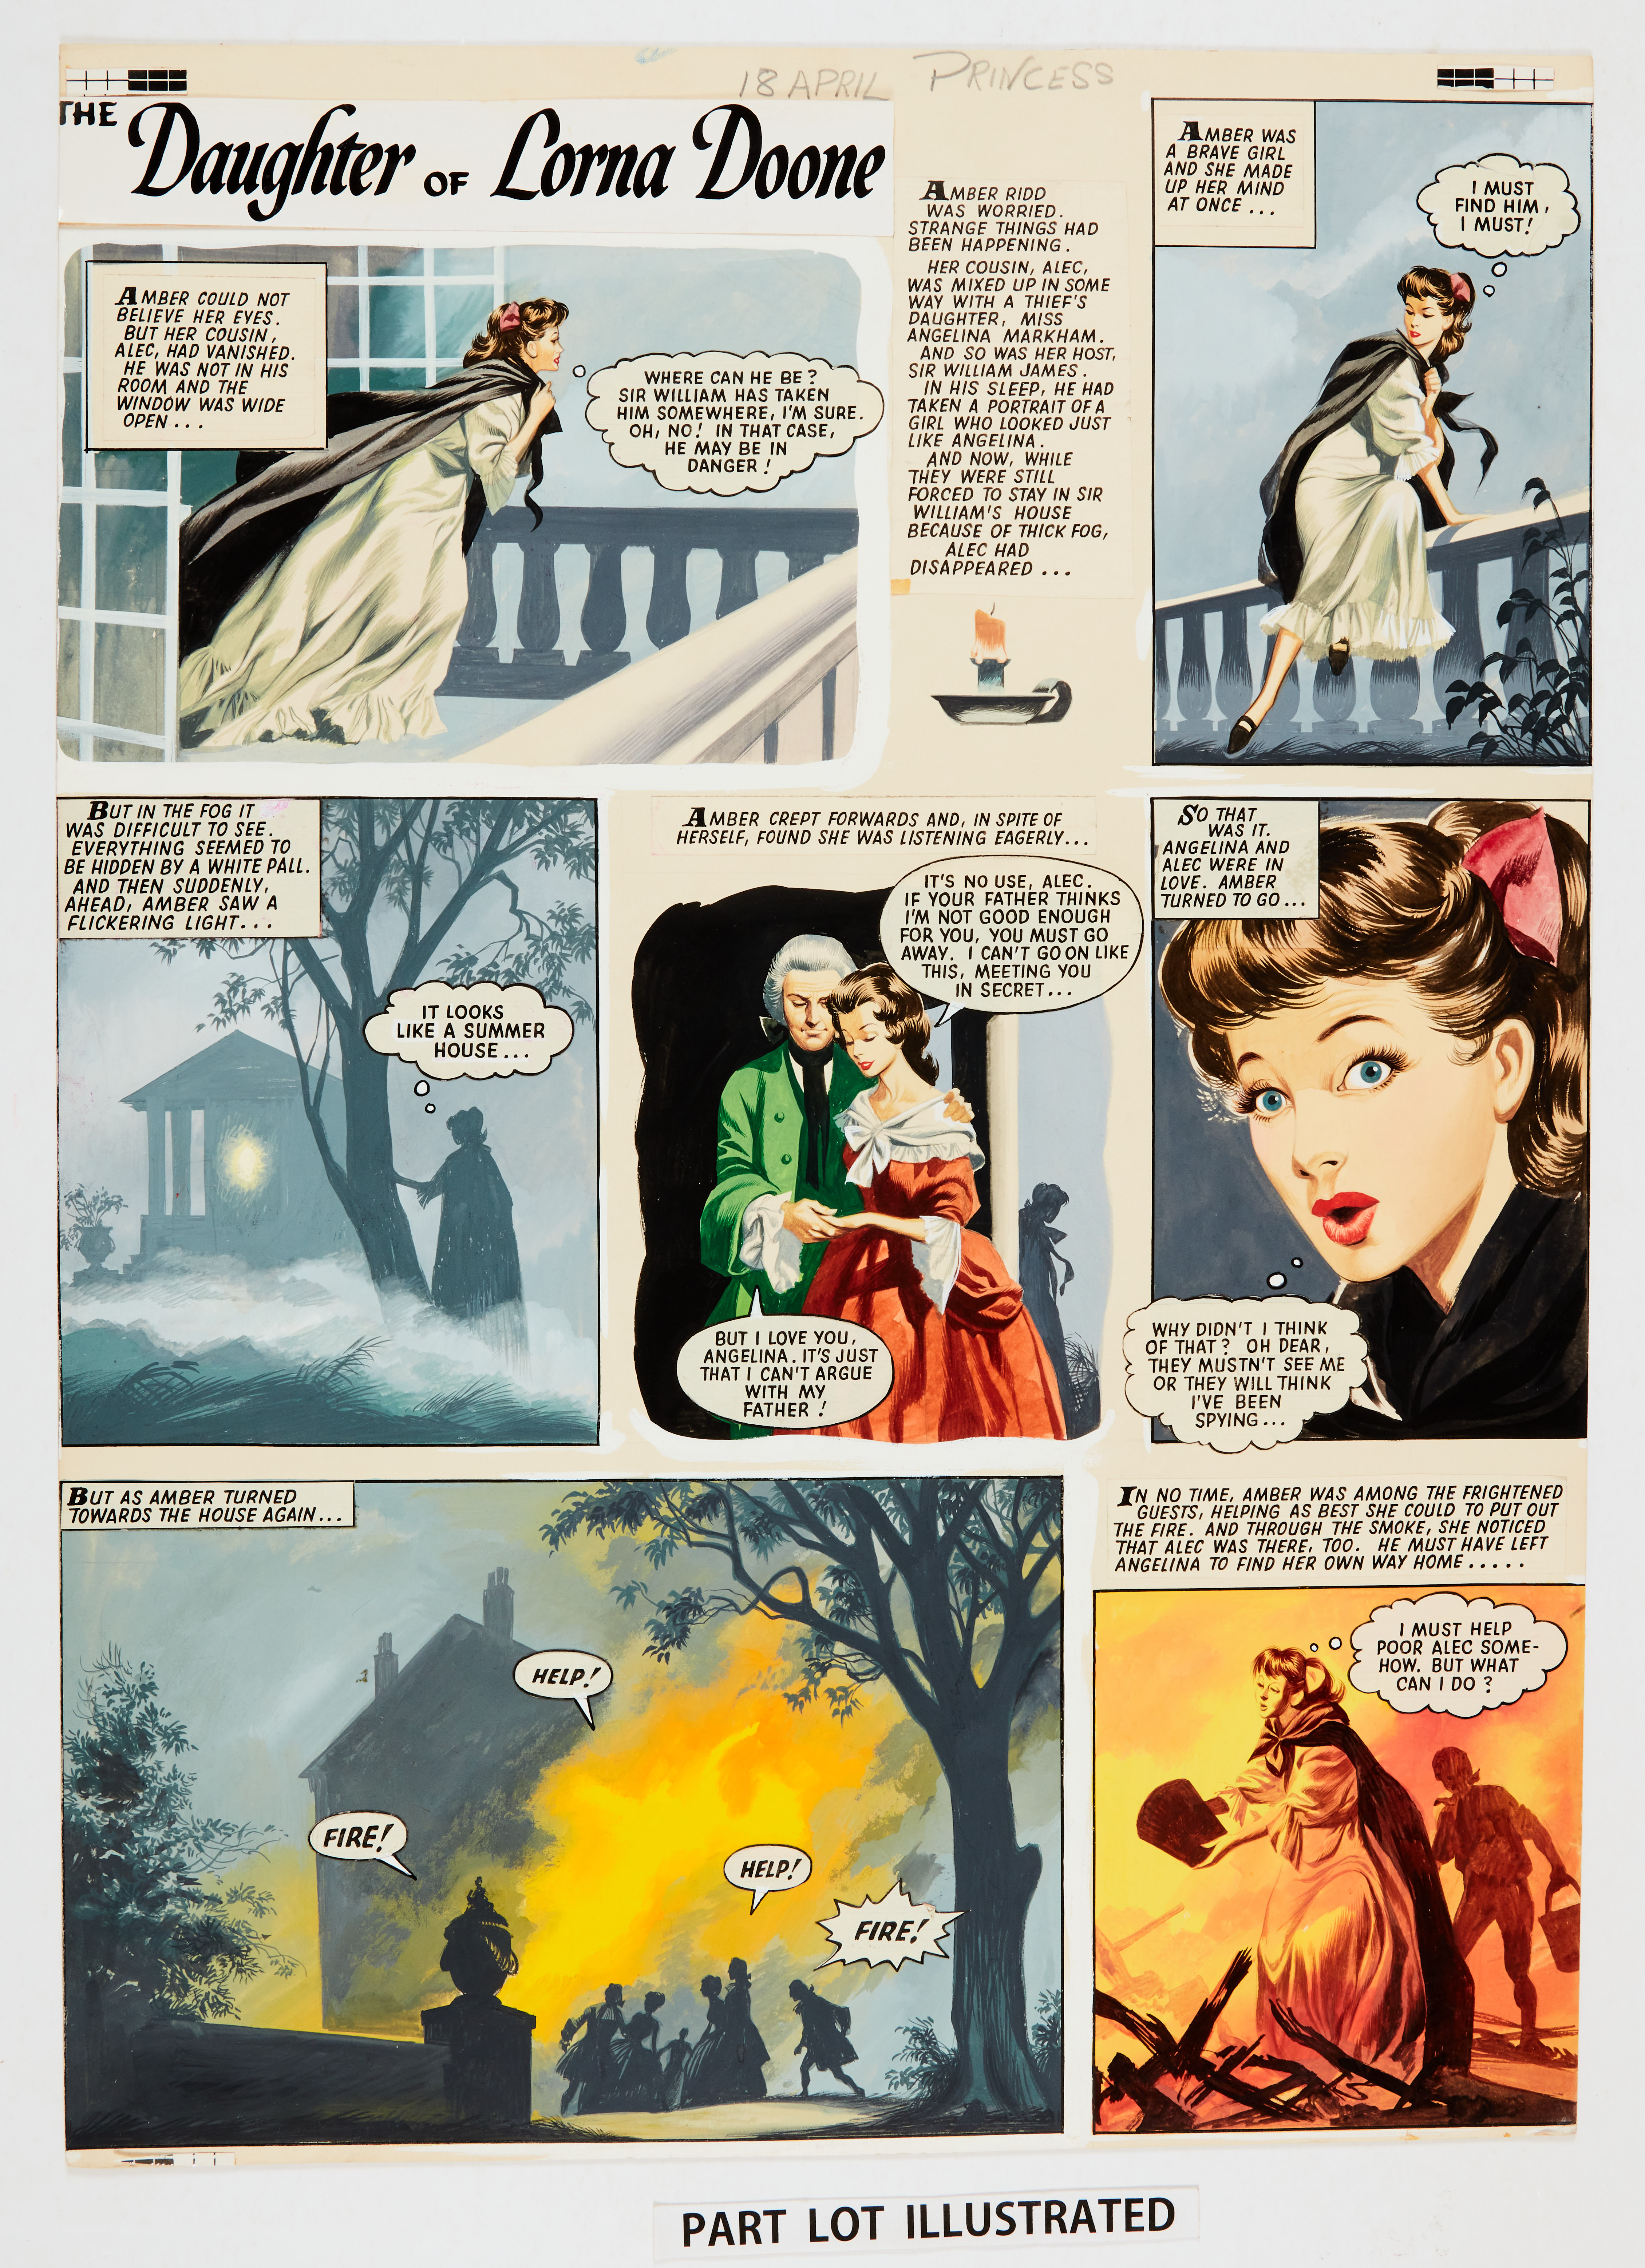 The Daughter of Lorna Doone: two consecutive original colour artworks by Ron Embleton (early